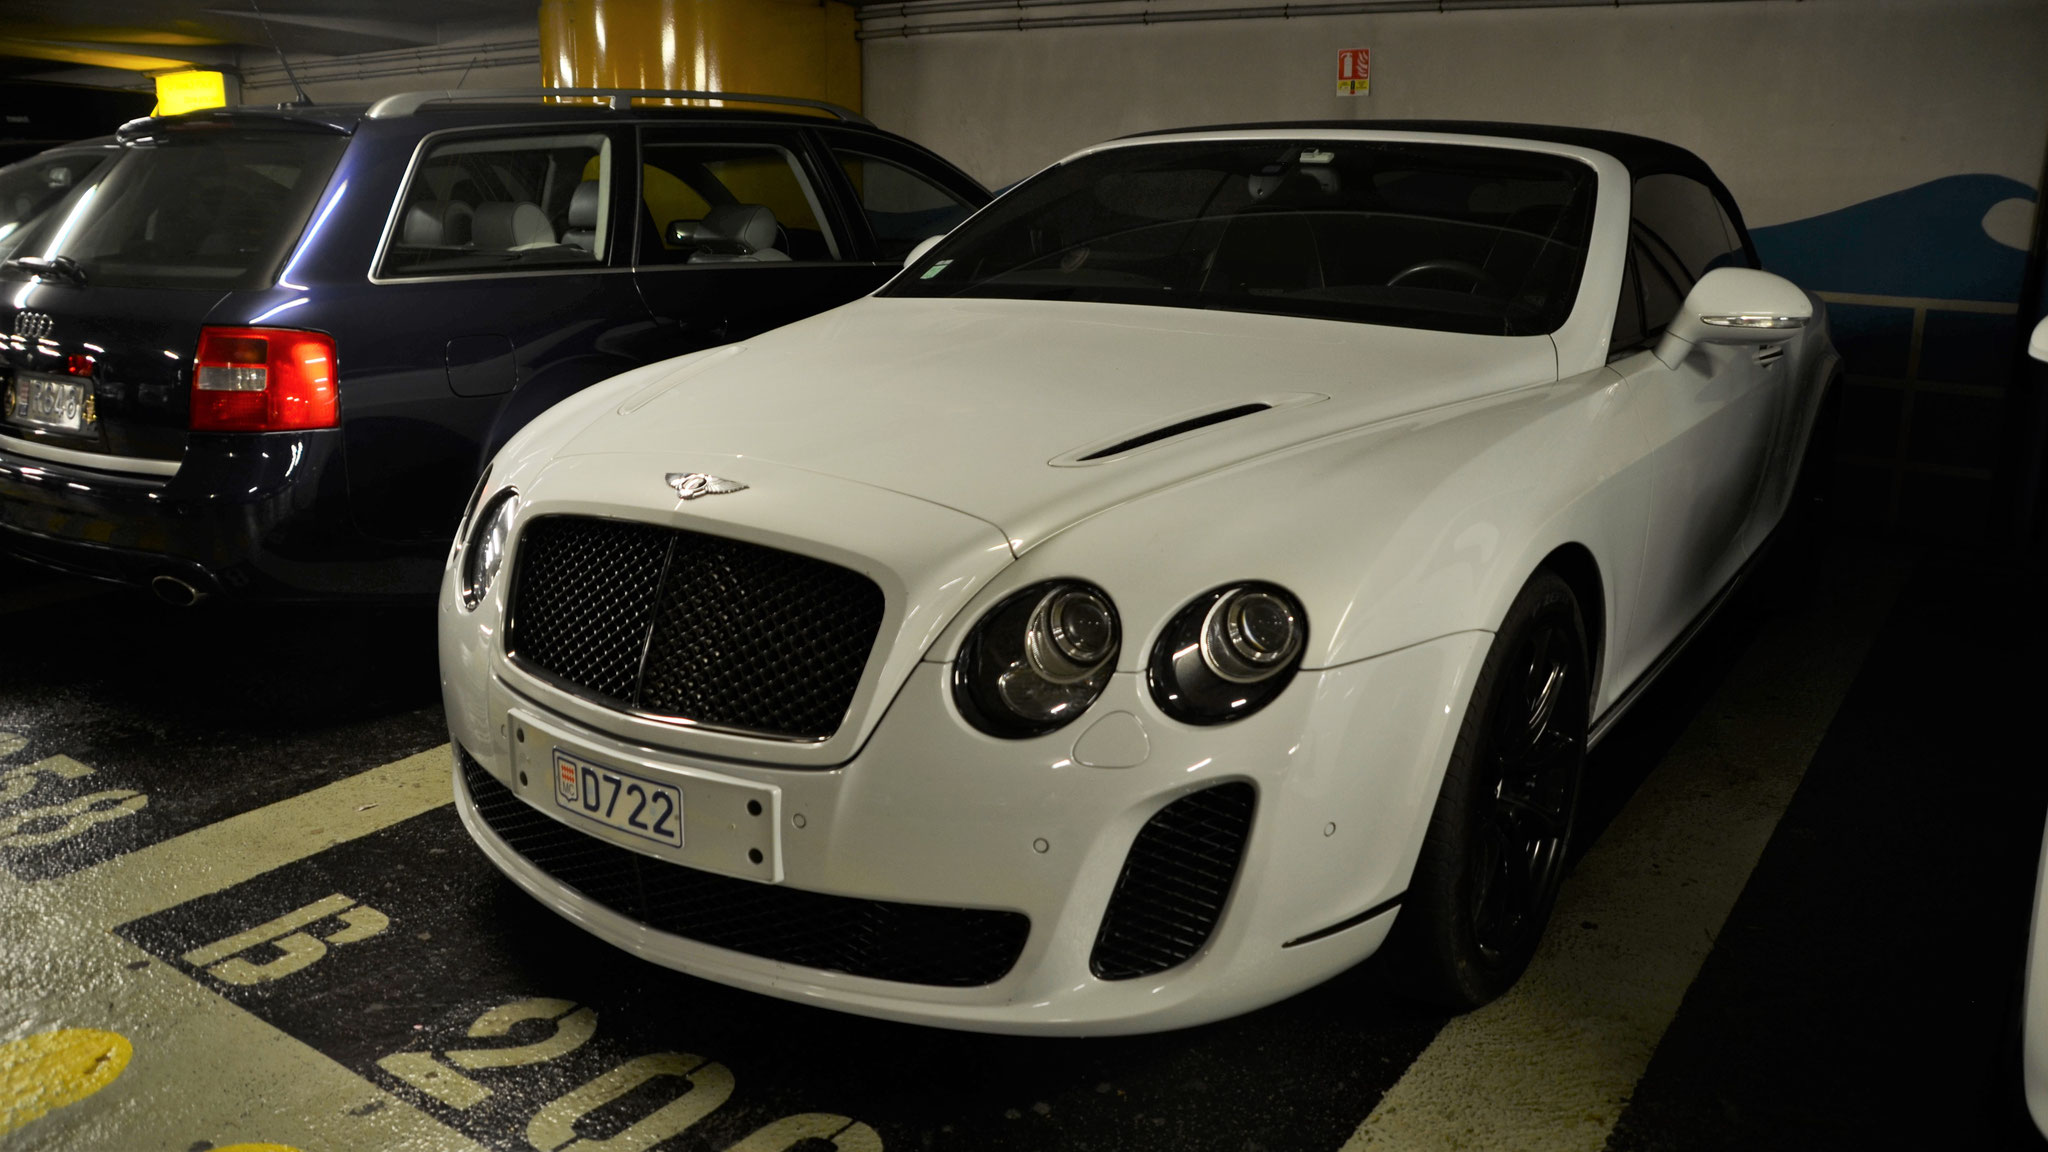 Bentley Continental GTC Supersports - D722 (MC)